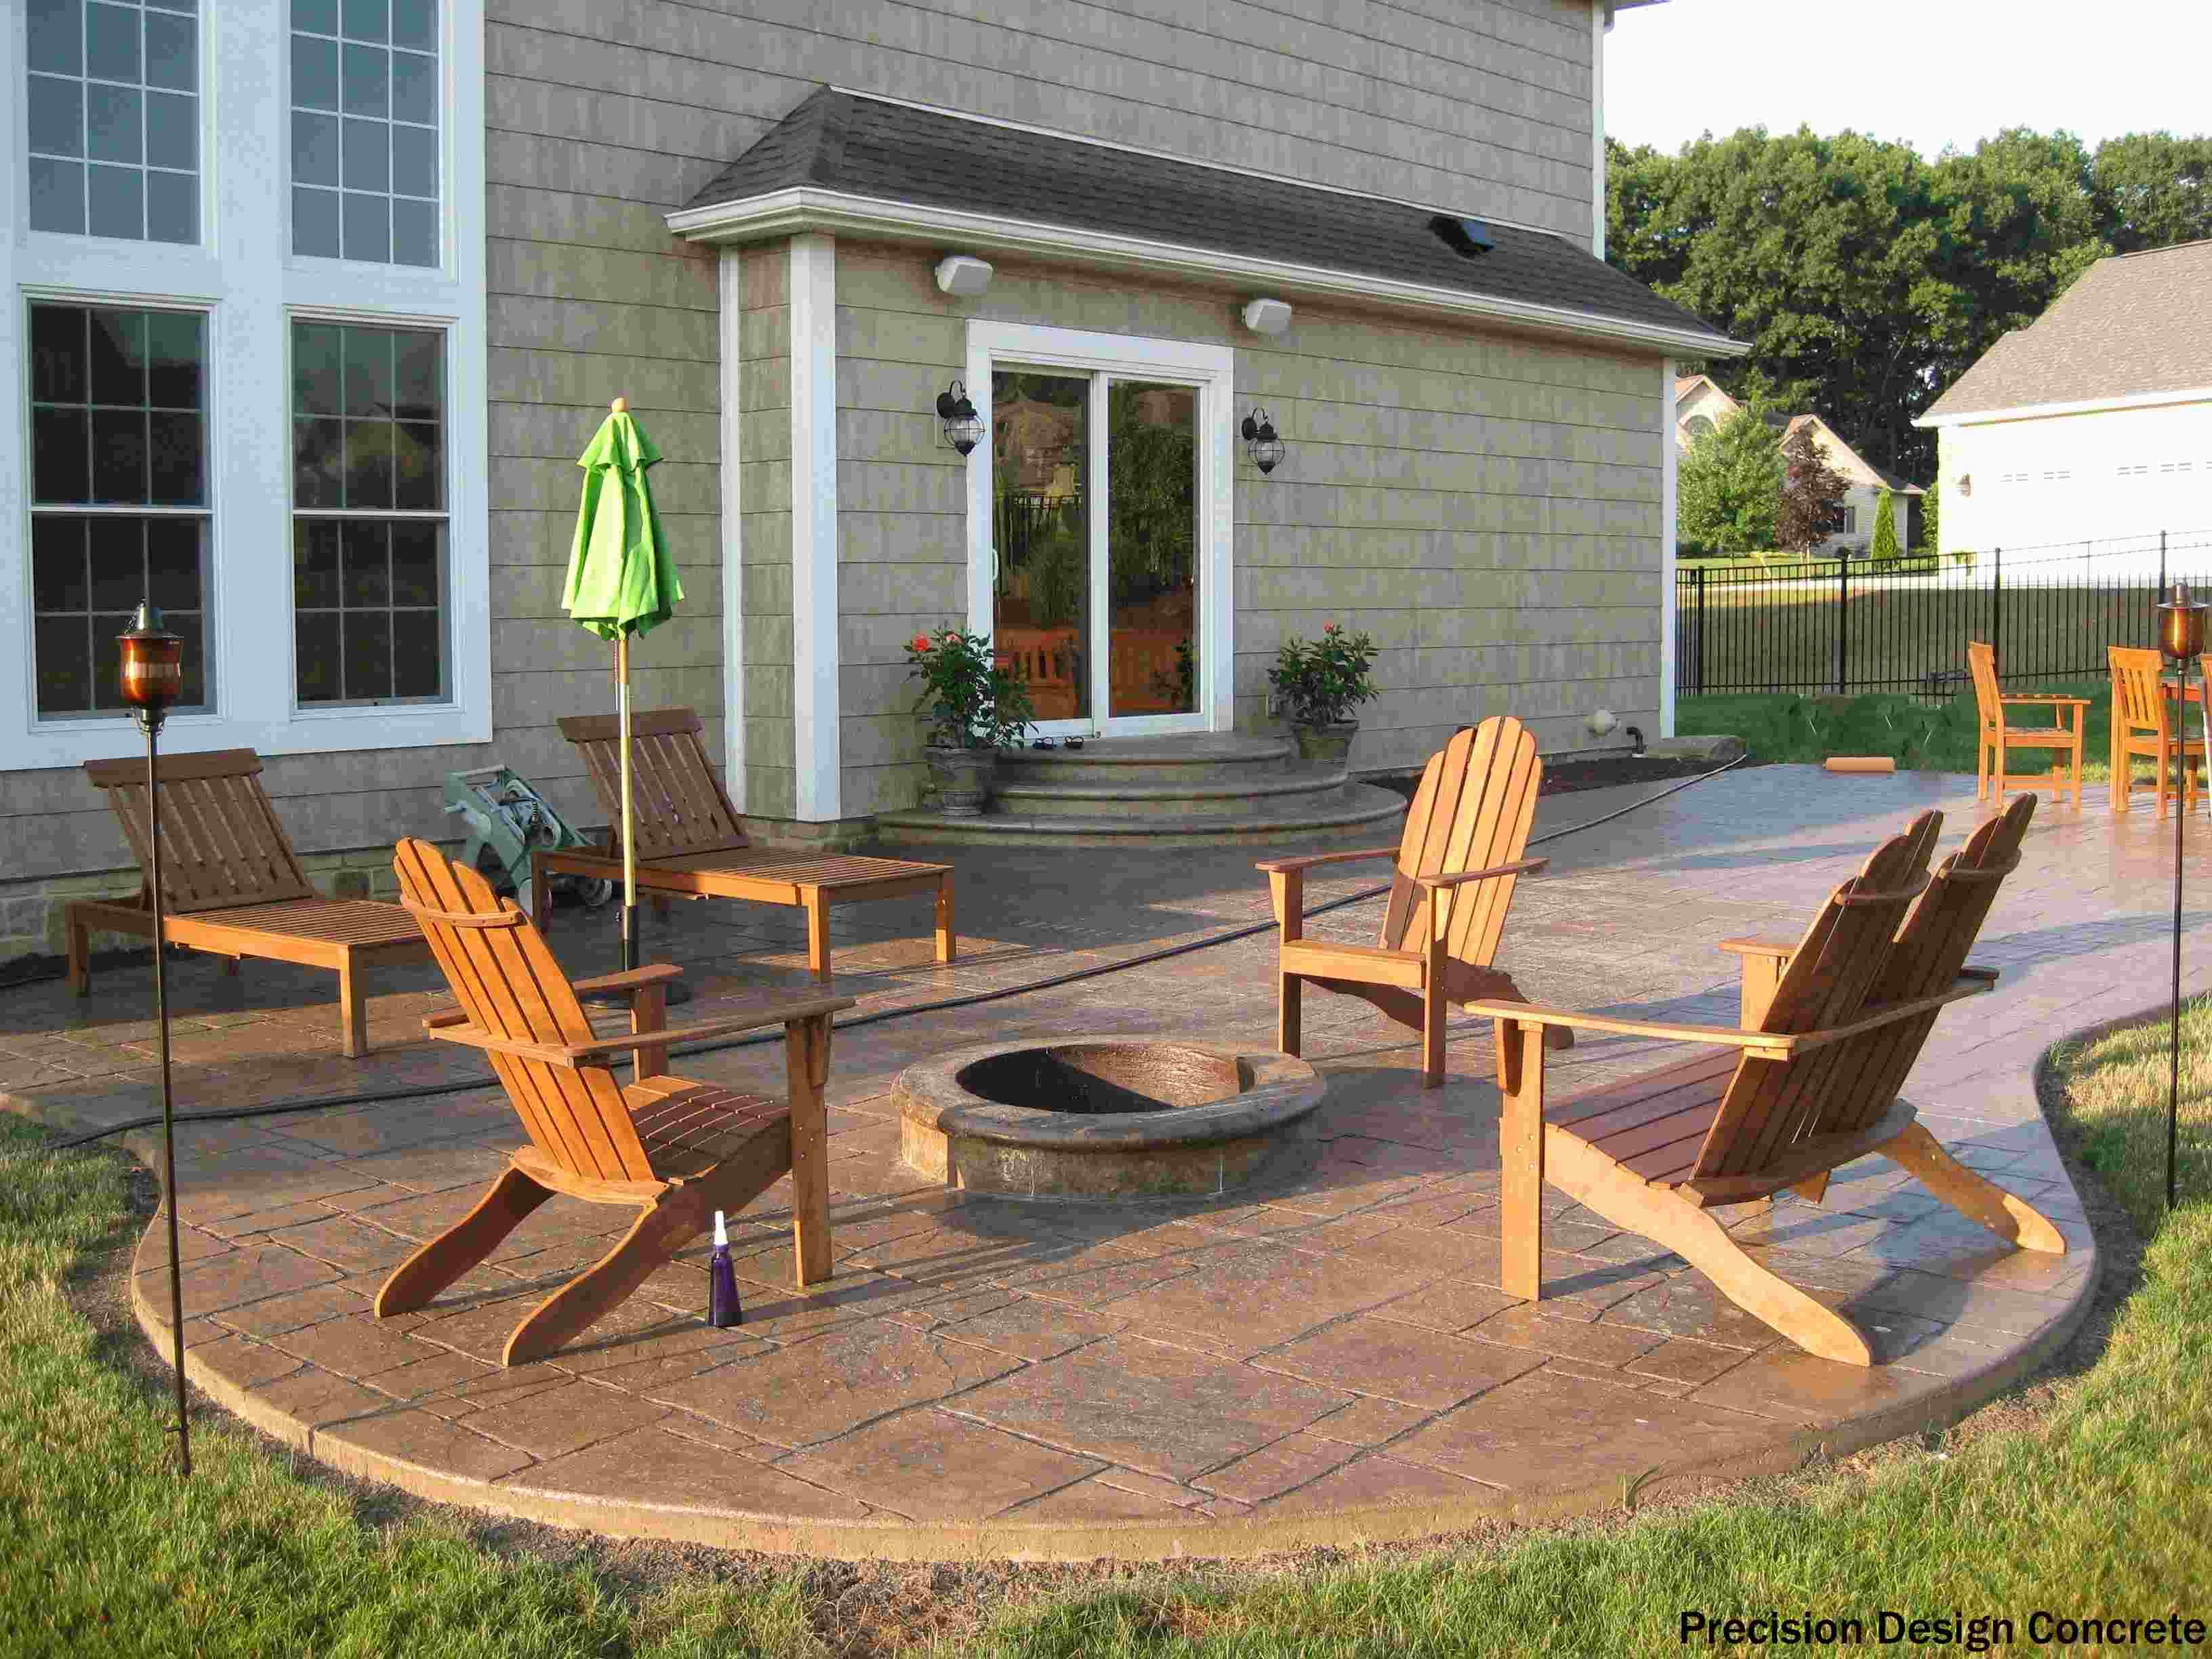 A Cobblestone Patio And In Ground Fire Pit Are Winners Is Our Book. Average  Price To Install A Patio Is $2,600.